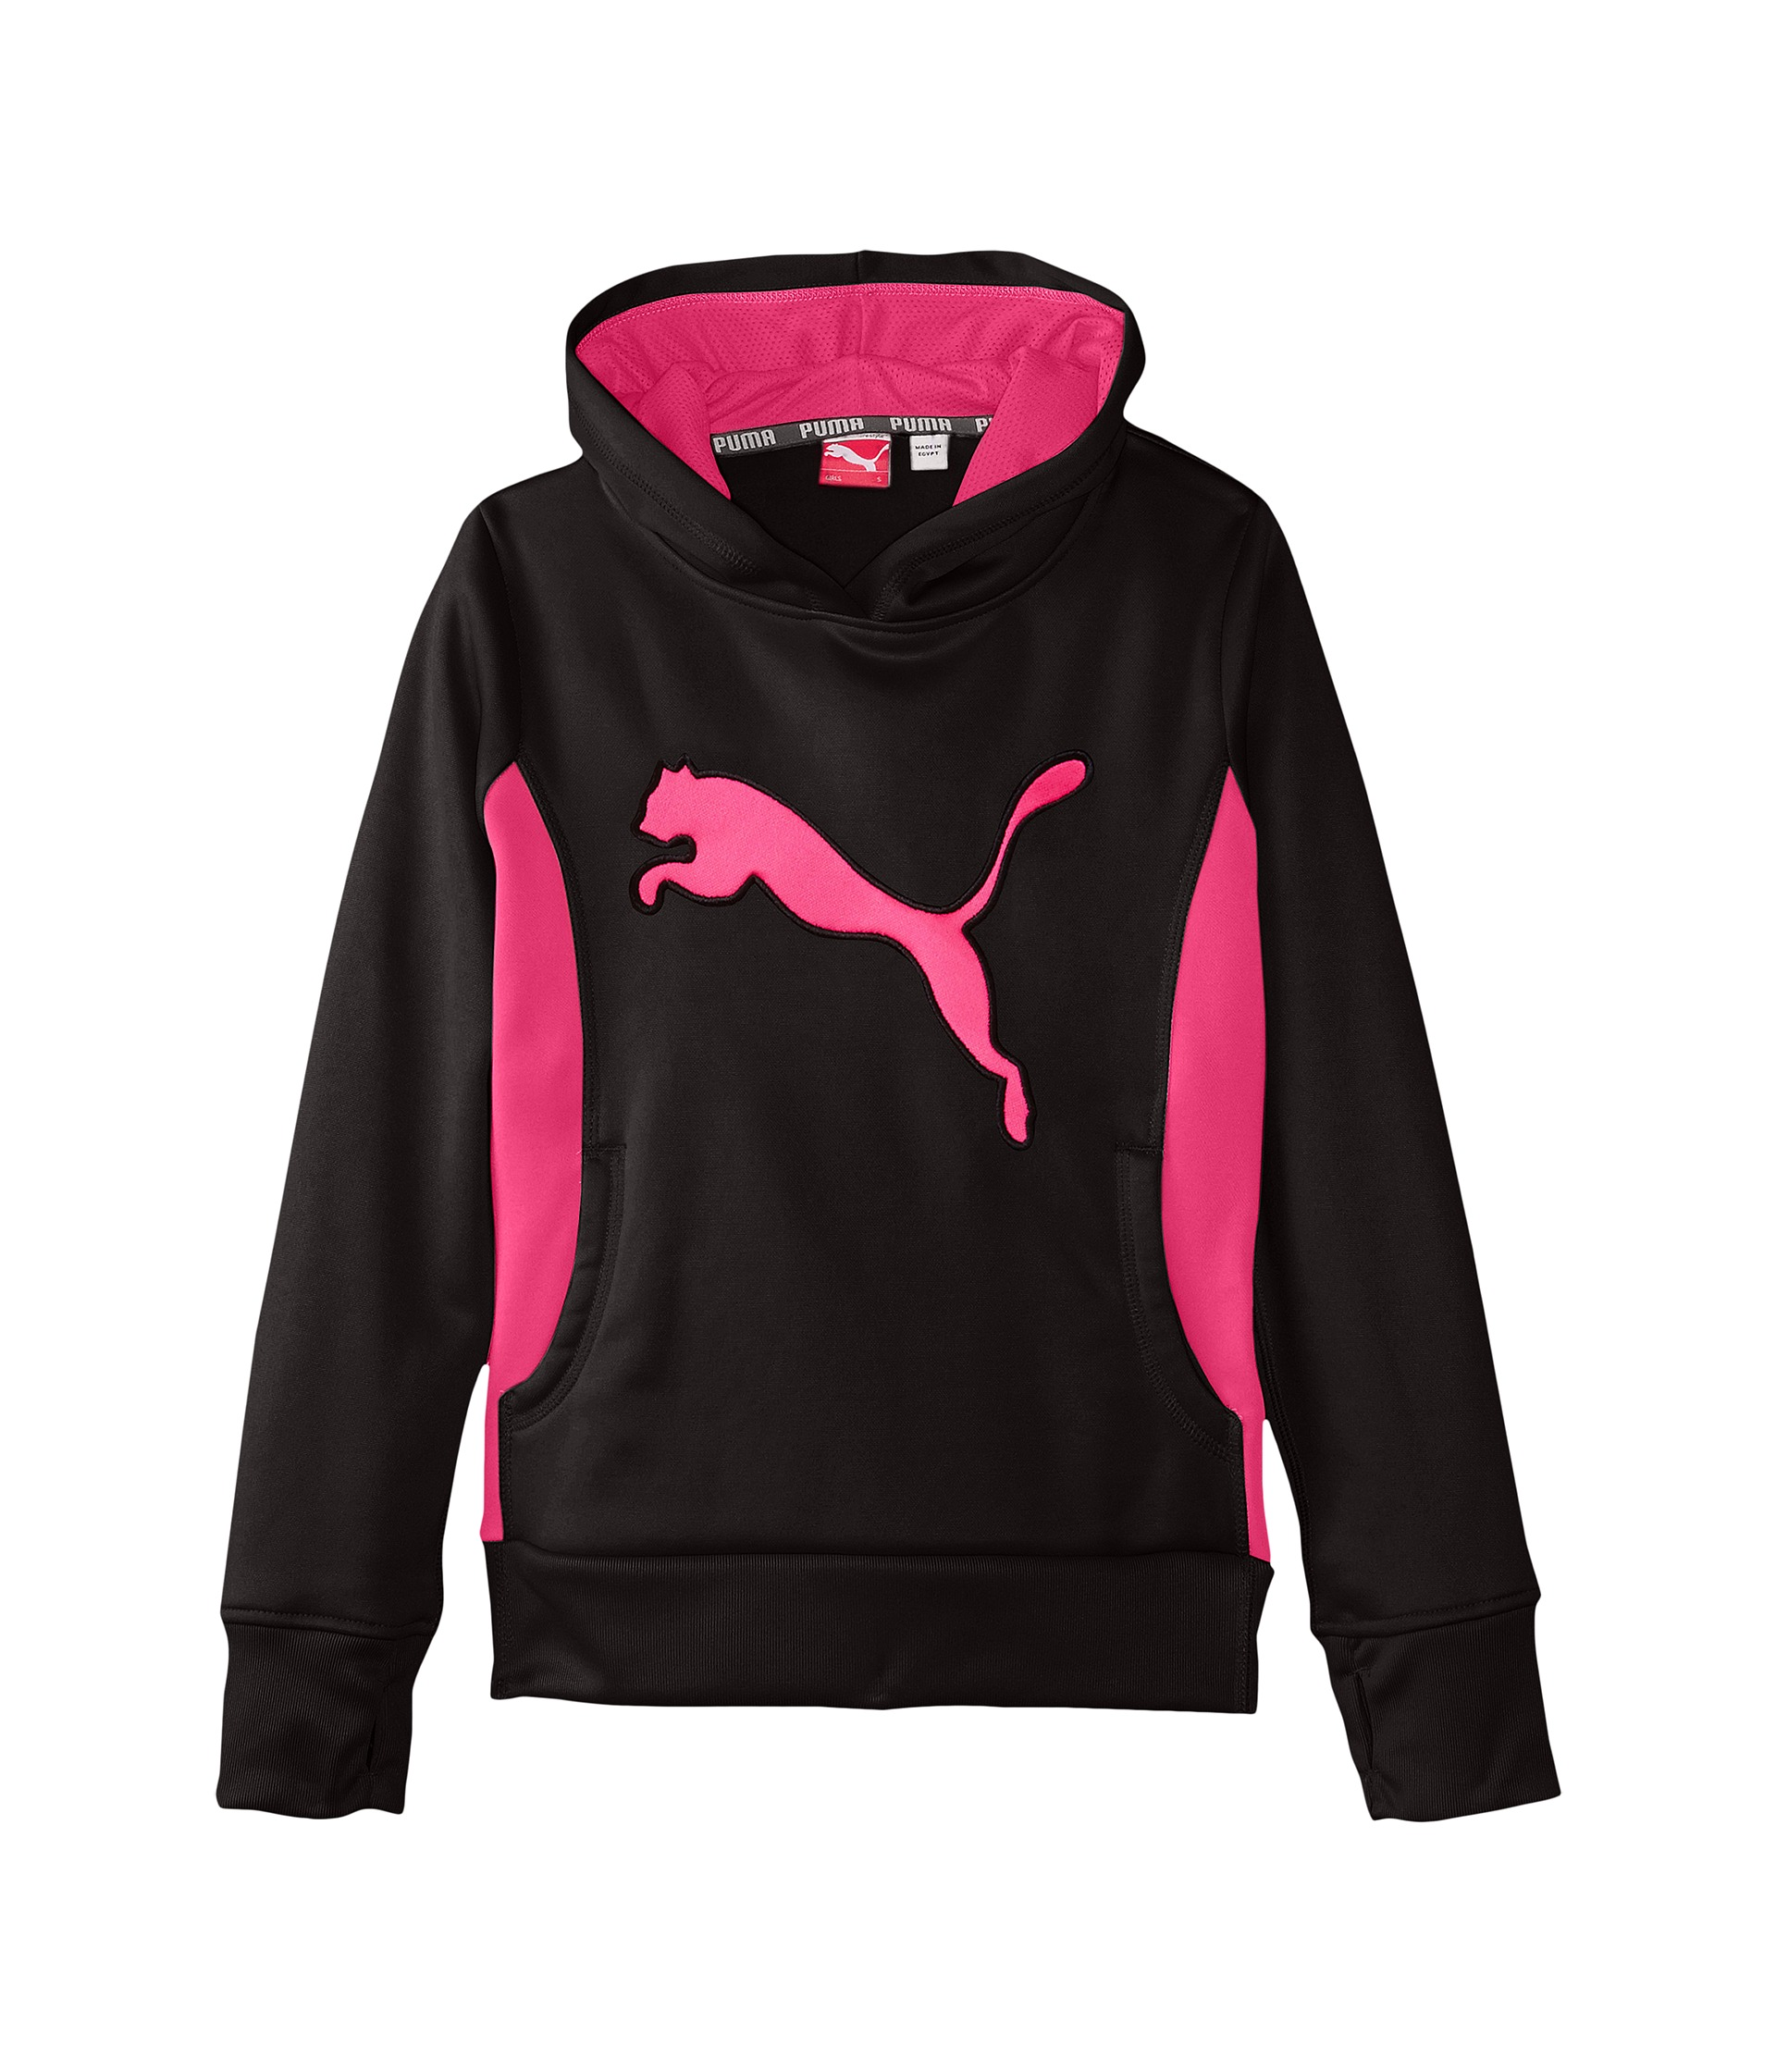 Puma Kids Cat Hoodie w/ Thumb Hole (Big Kids) at Zappos.com